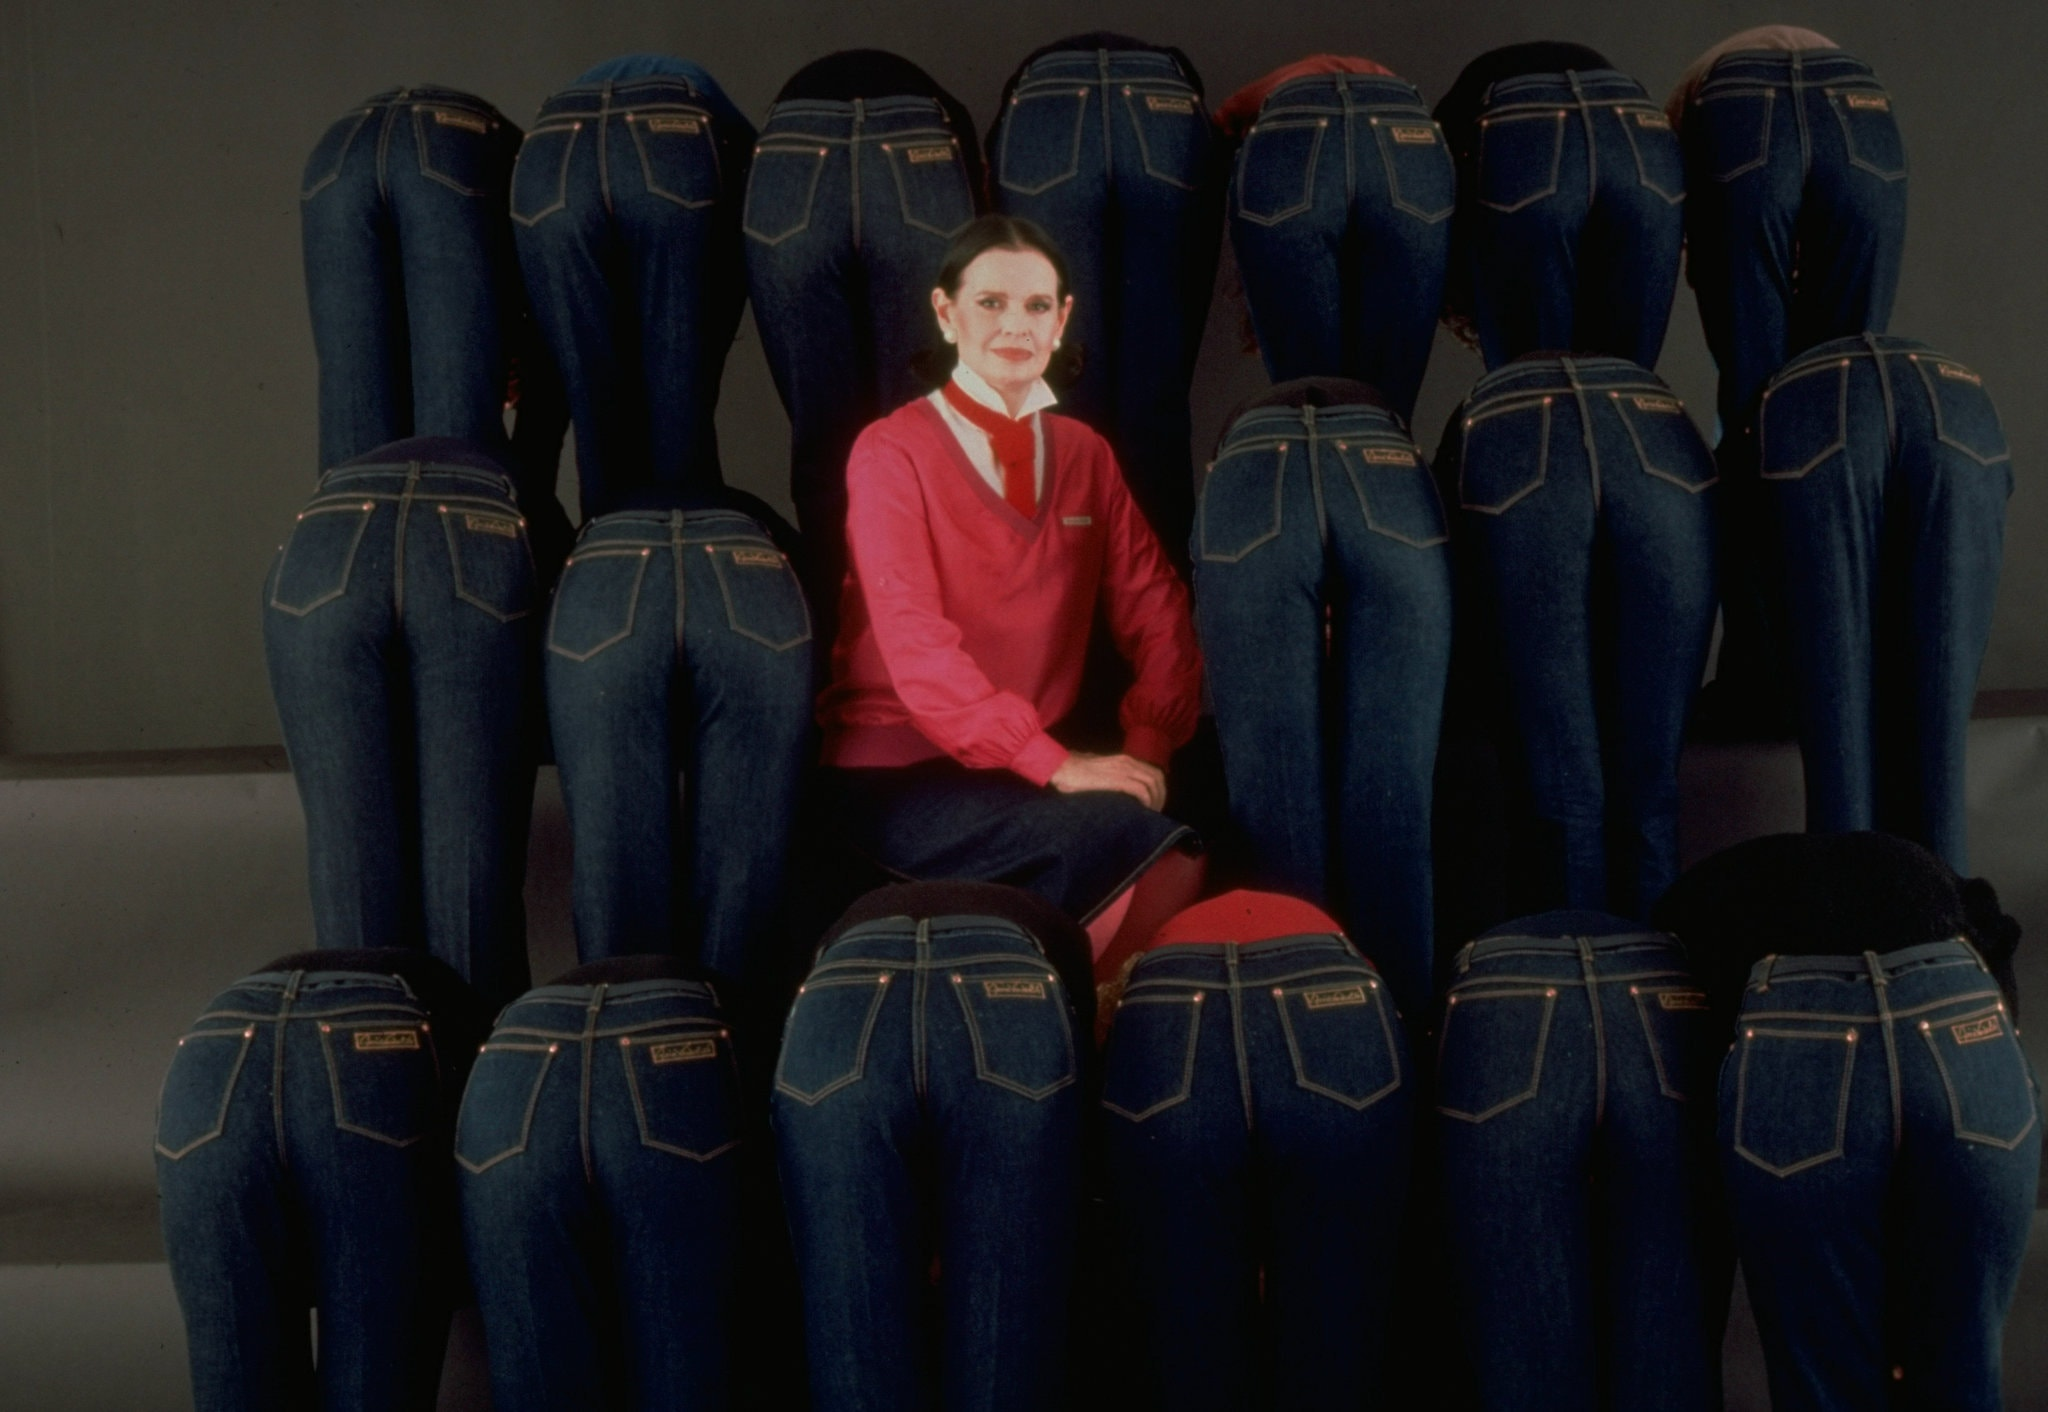 Gloria Vanderbilt and Her Famous Jeans  Photo:  The Life Images Collection via Getty Images